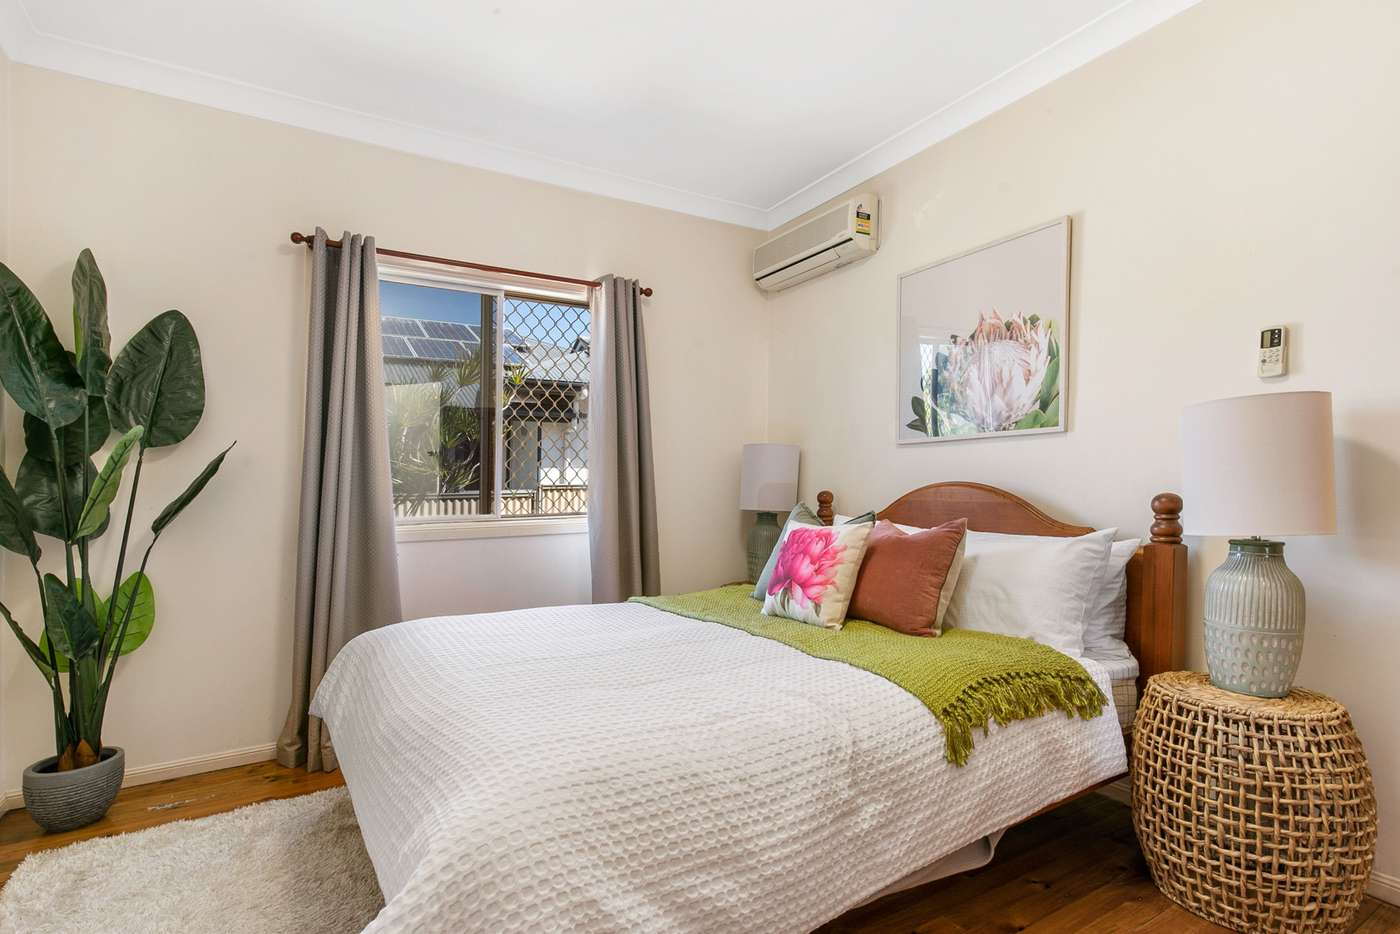 Fifth view of Homely house listing, 172 Oates Avenue, Holland Park QLD 4121